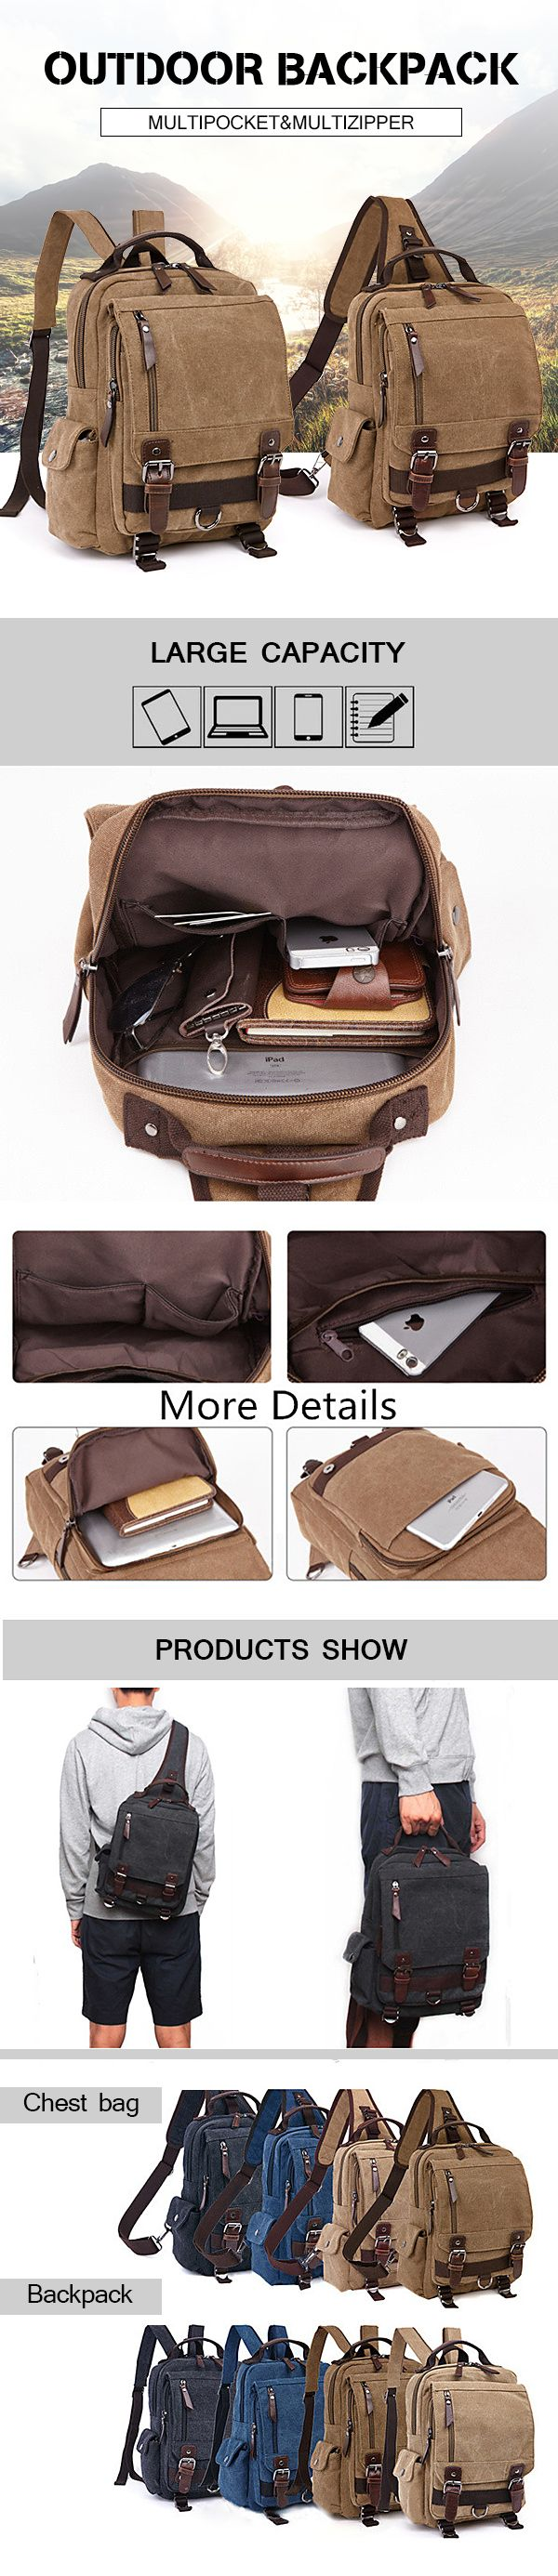 3007 best Backpacks And Bags images on Pinterest | Leather bags ...